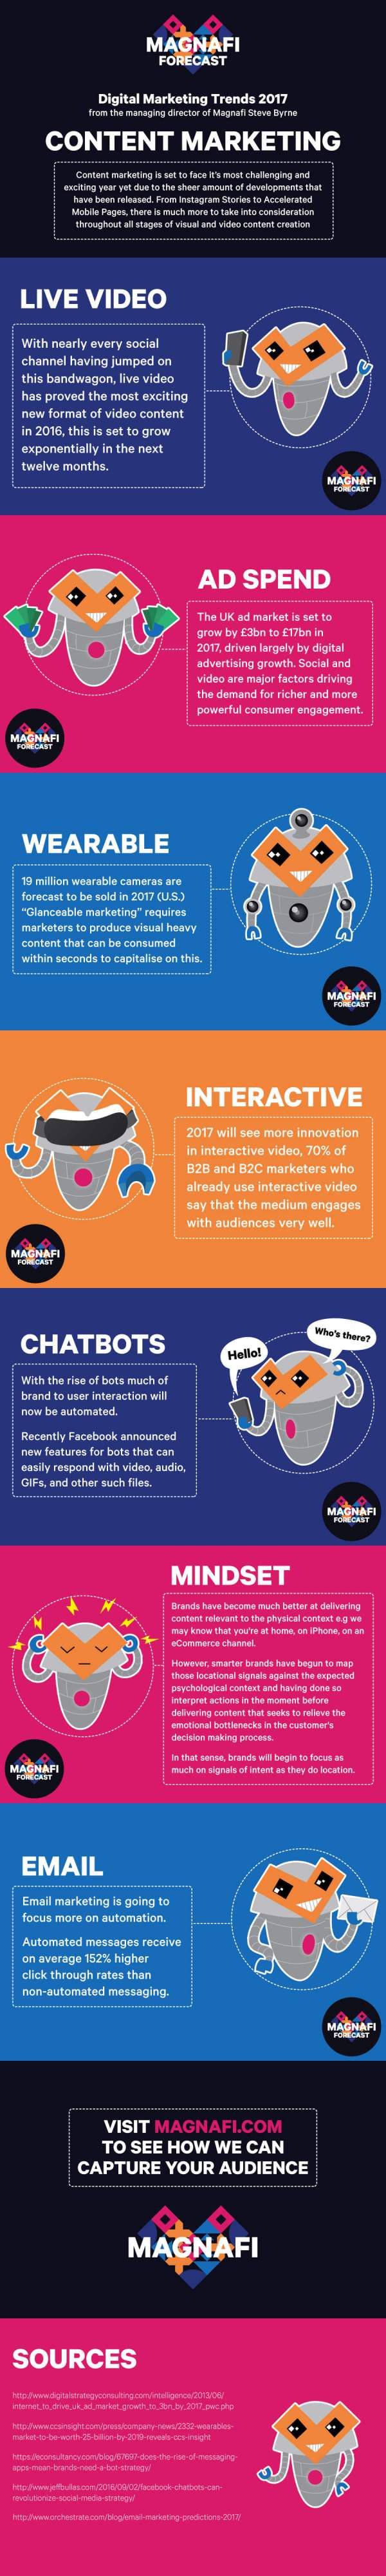 magnafi-content-marketing-2017-infographic